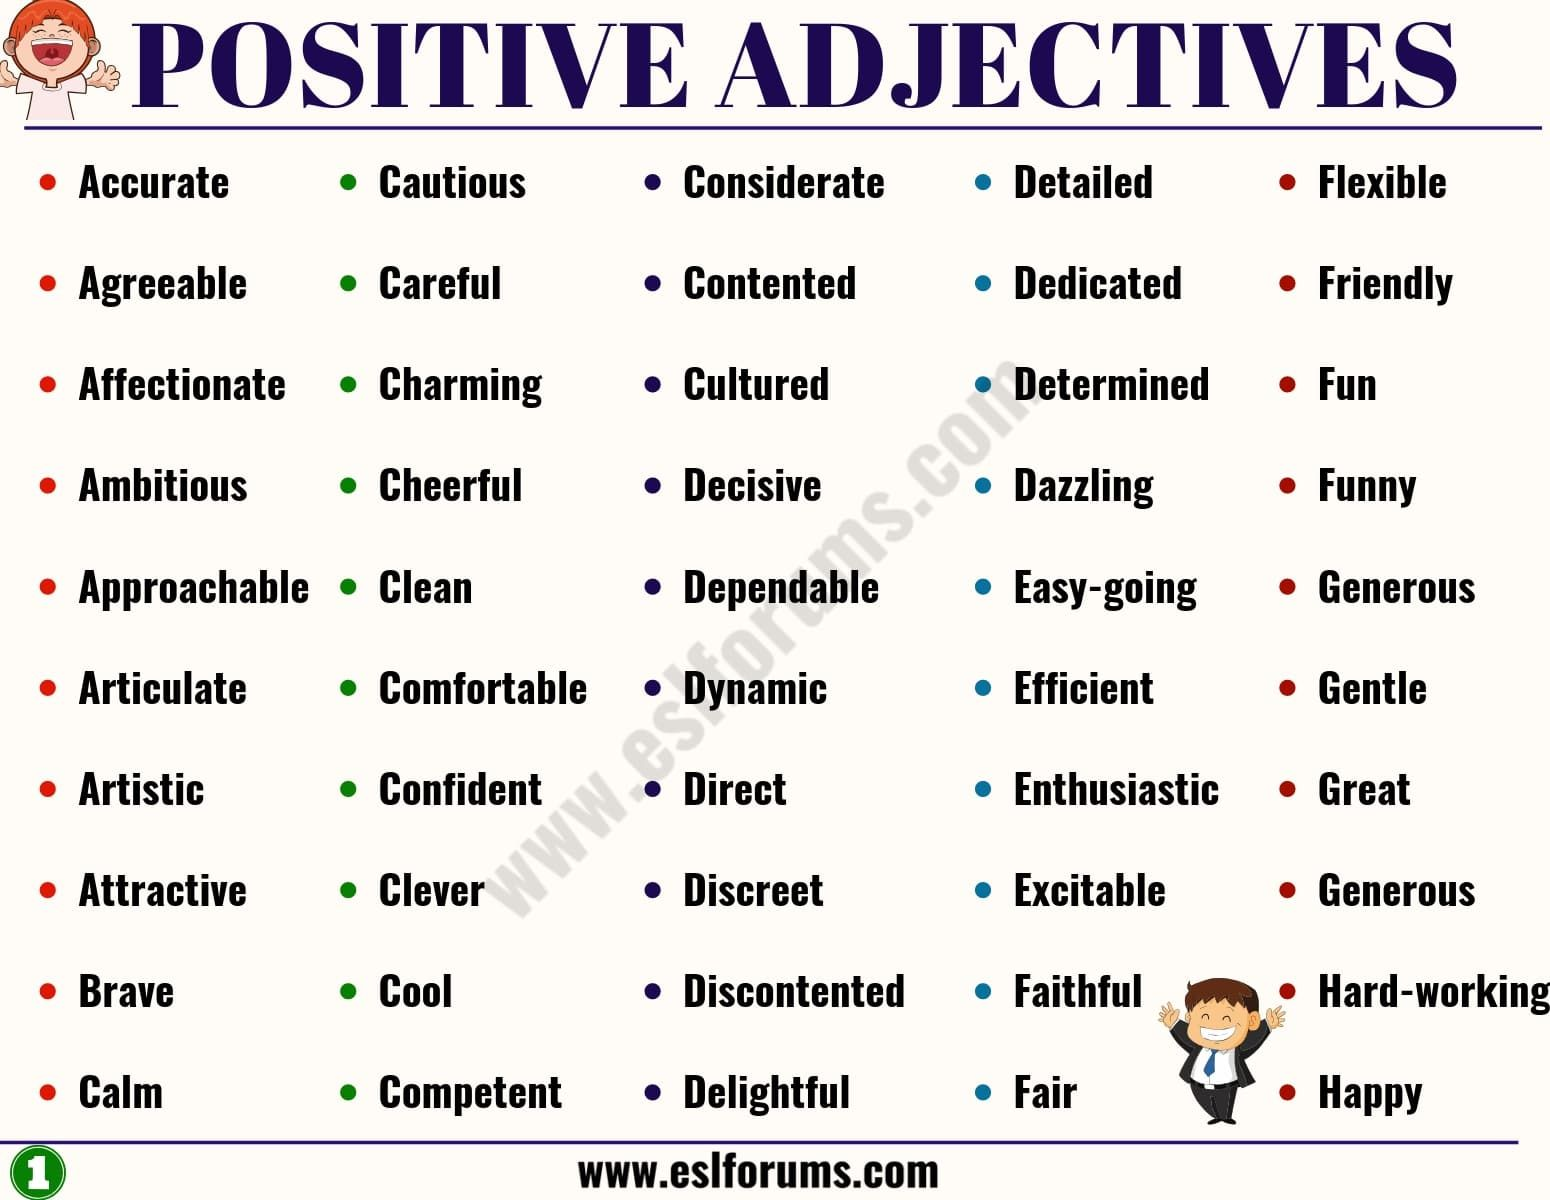 100 Important Positive Adjectives From A Z To Describe A Person Esl Forums